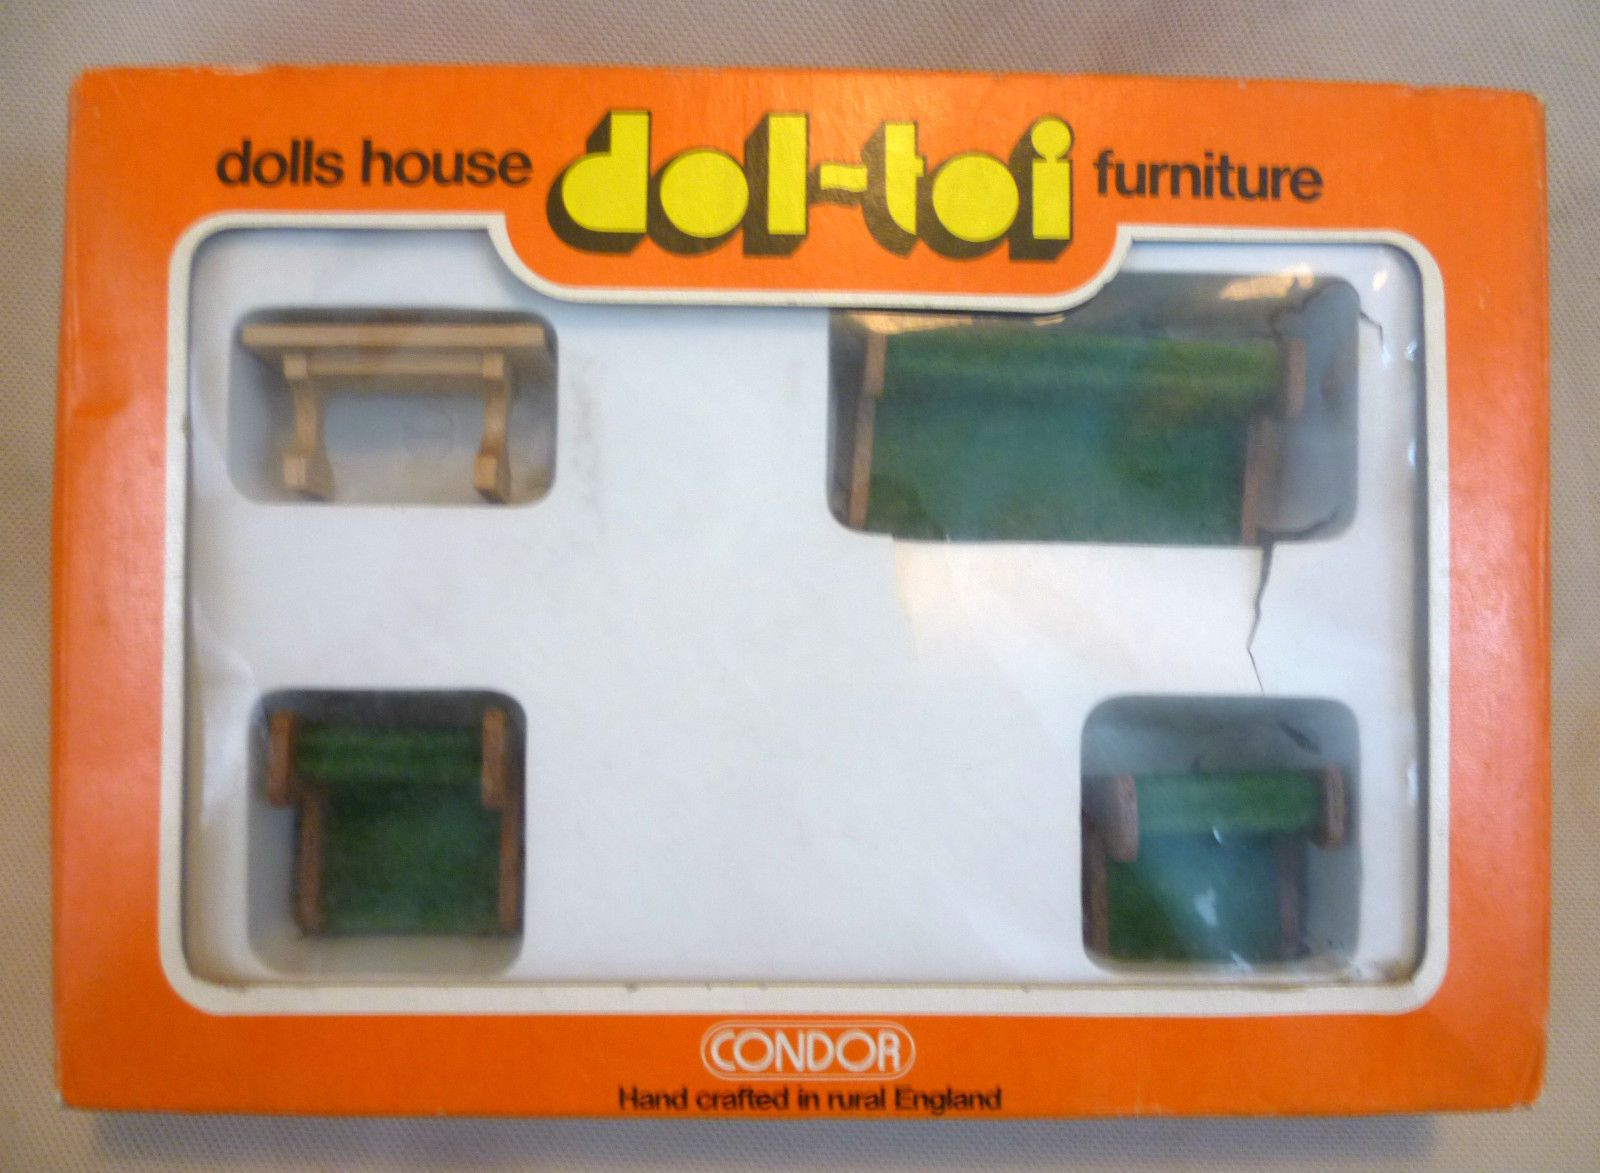 Vintage Dolls House Dol Toi Condor Living Room Furniture Boxed Set